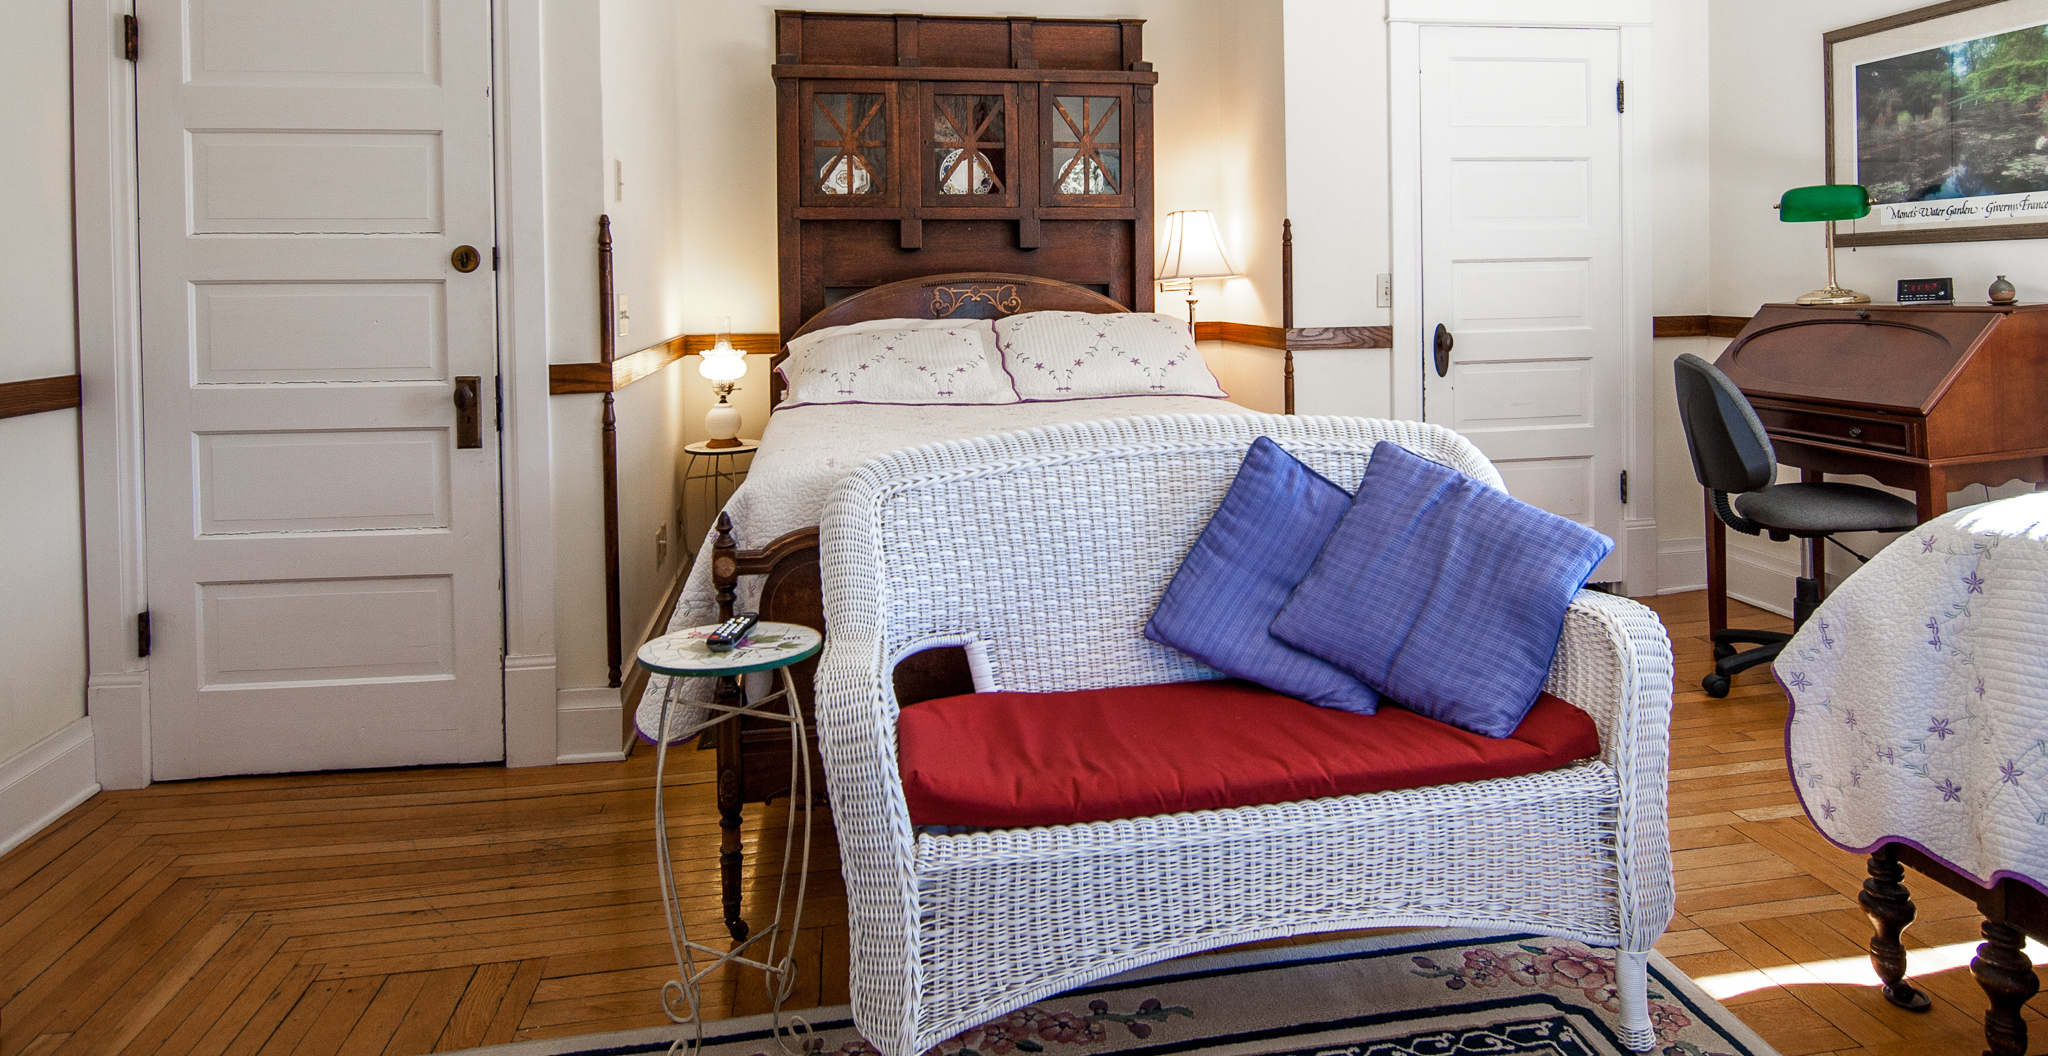 A wicker bench with blue pillows in the Bluestone Room in our B&B near JMU.